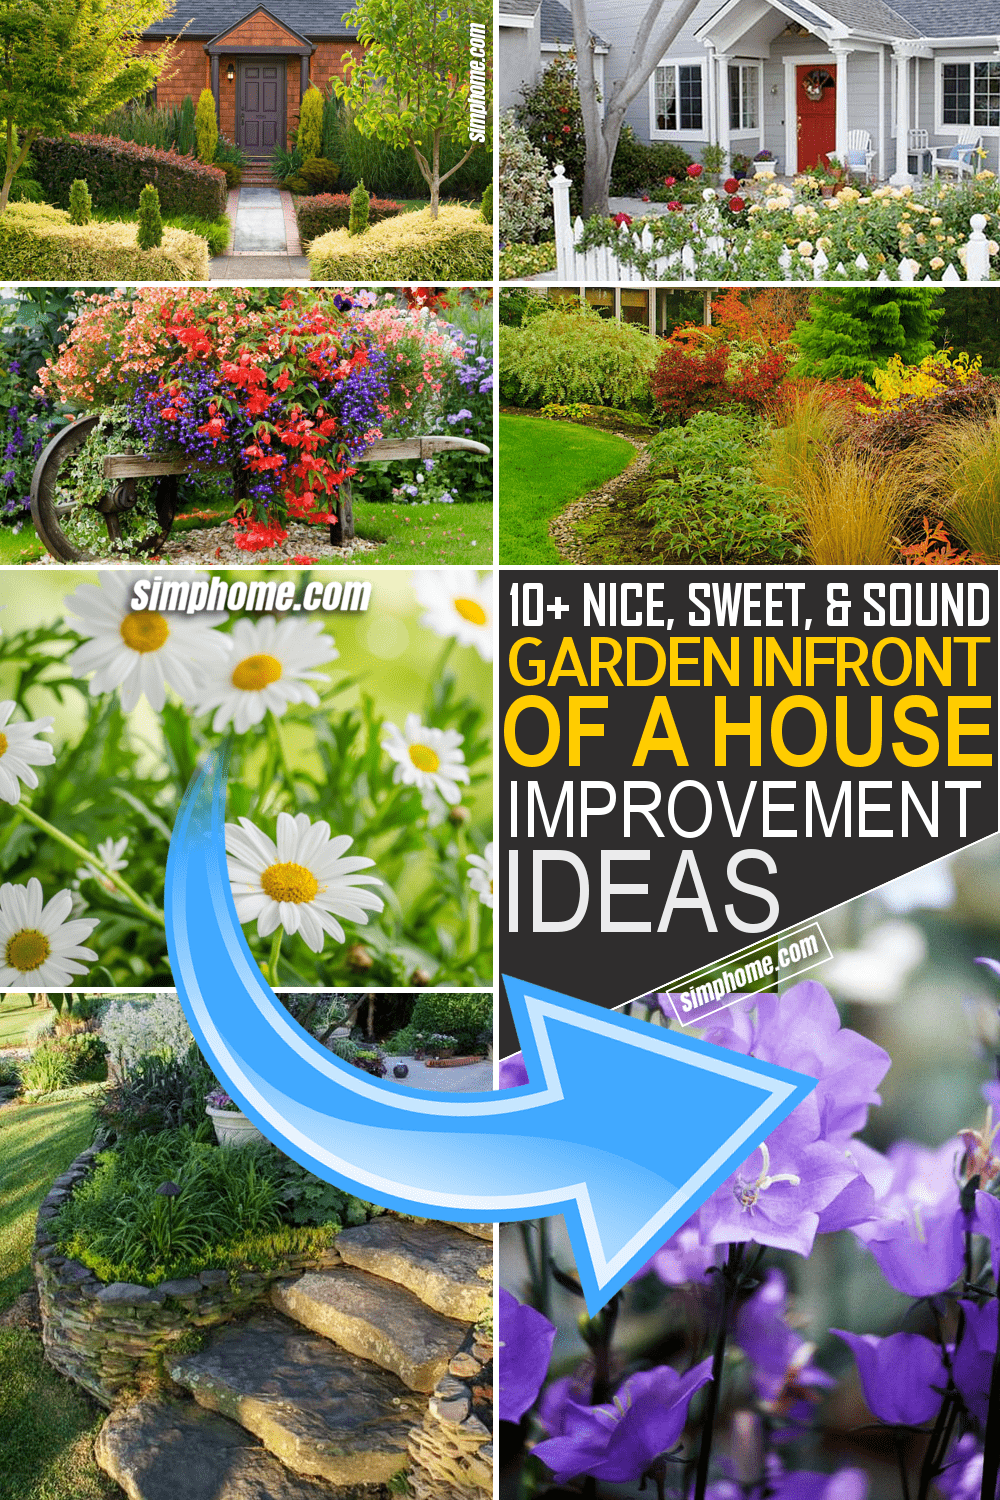 Simphome.com 10 Gardens in front of the House Ideas Featured Image